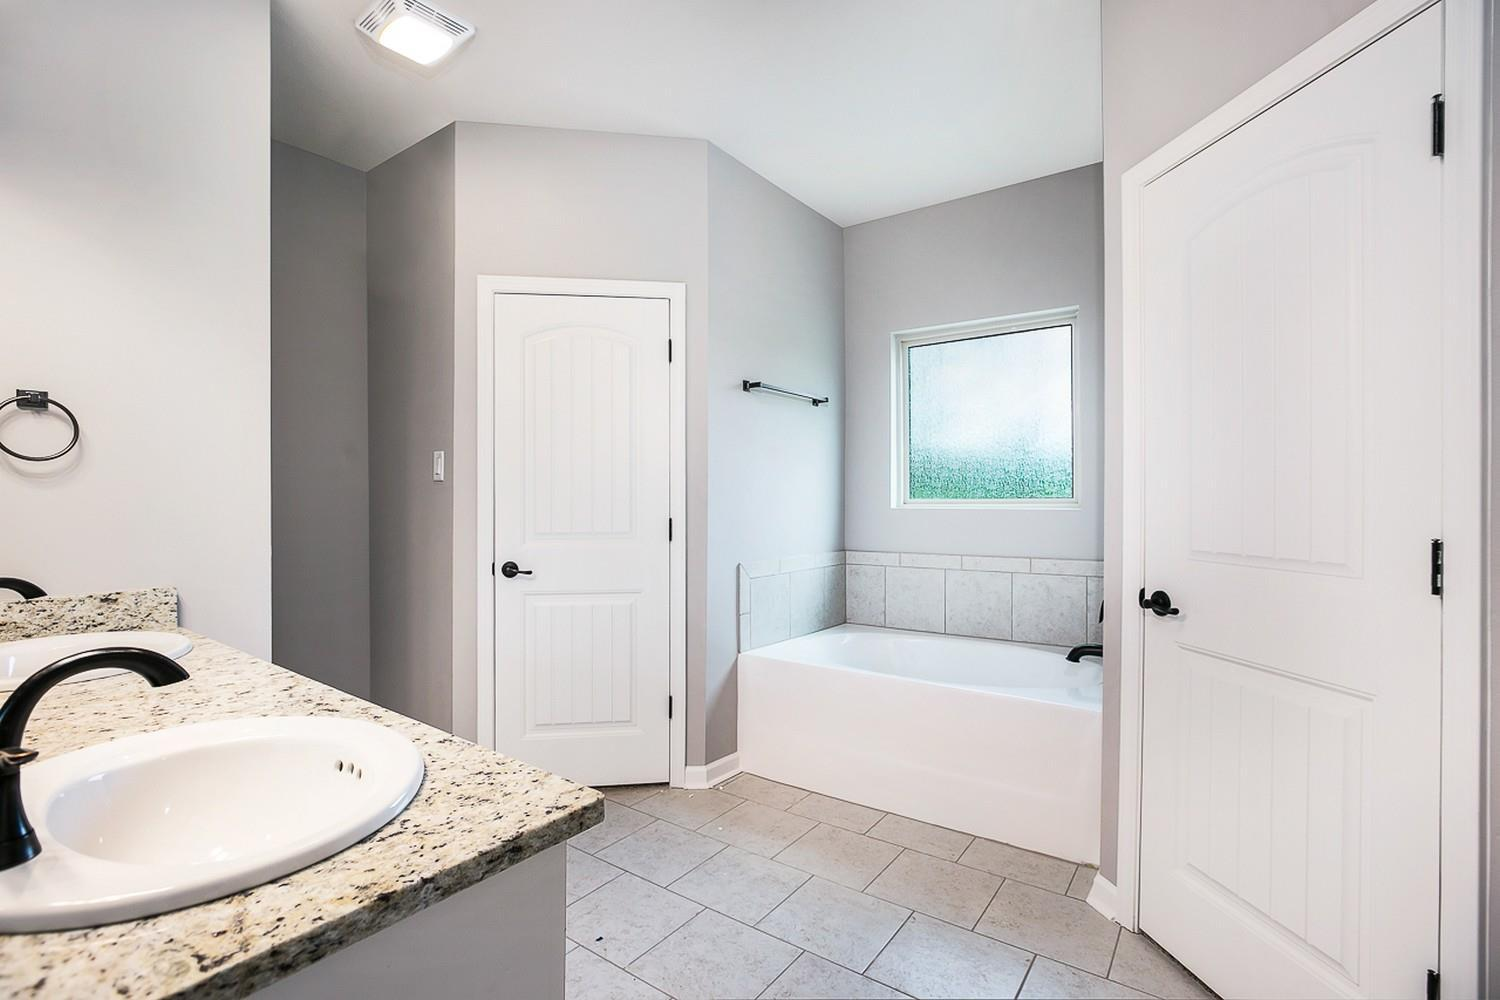 Bathroom featured in the Bristol I 1500 Series By Willie & Willie  in Baton Rouge, LA